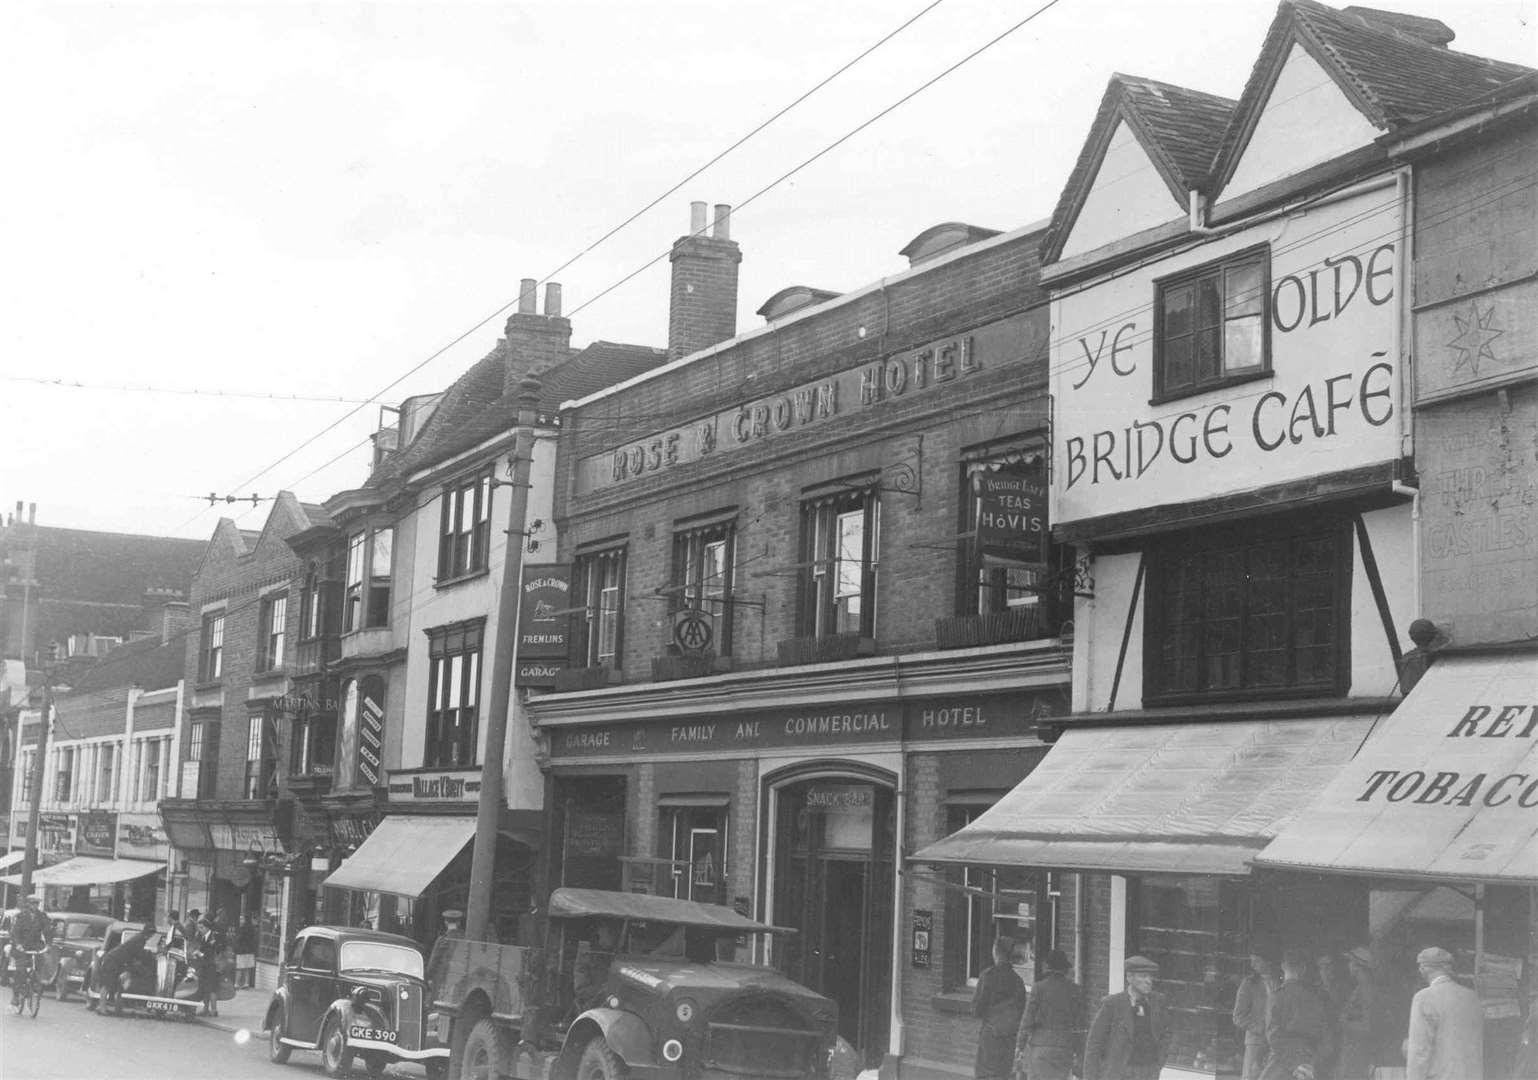 The Rose & Crown Hotel, in High Street, Maidstone. Picture: Images of Maidstone